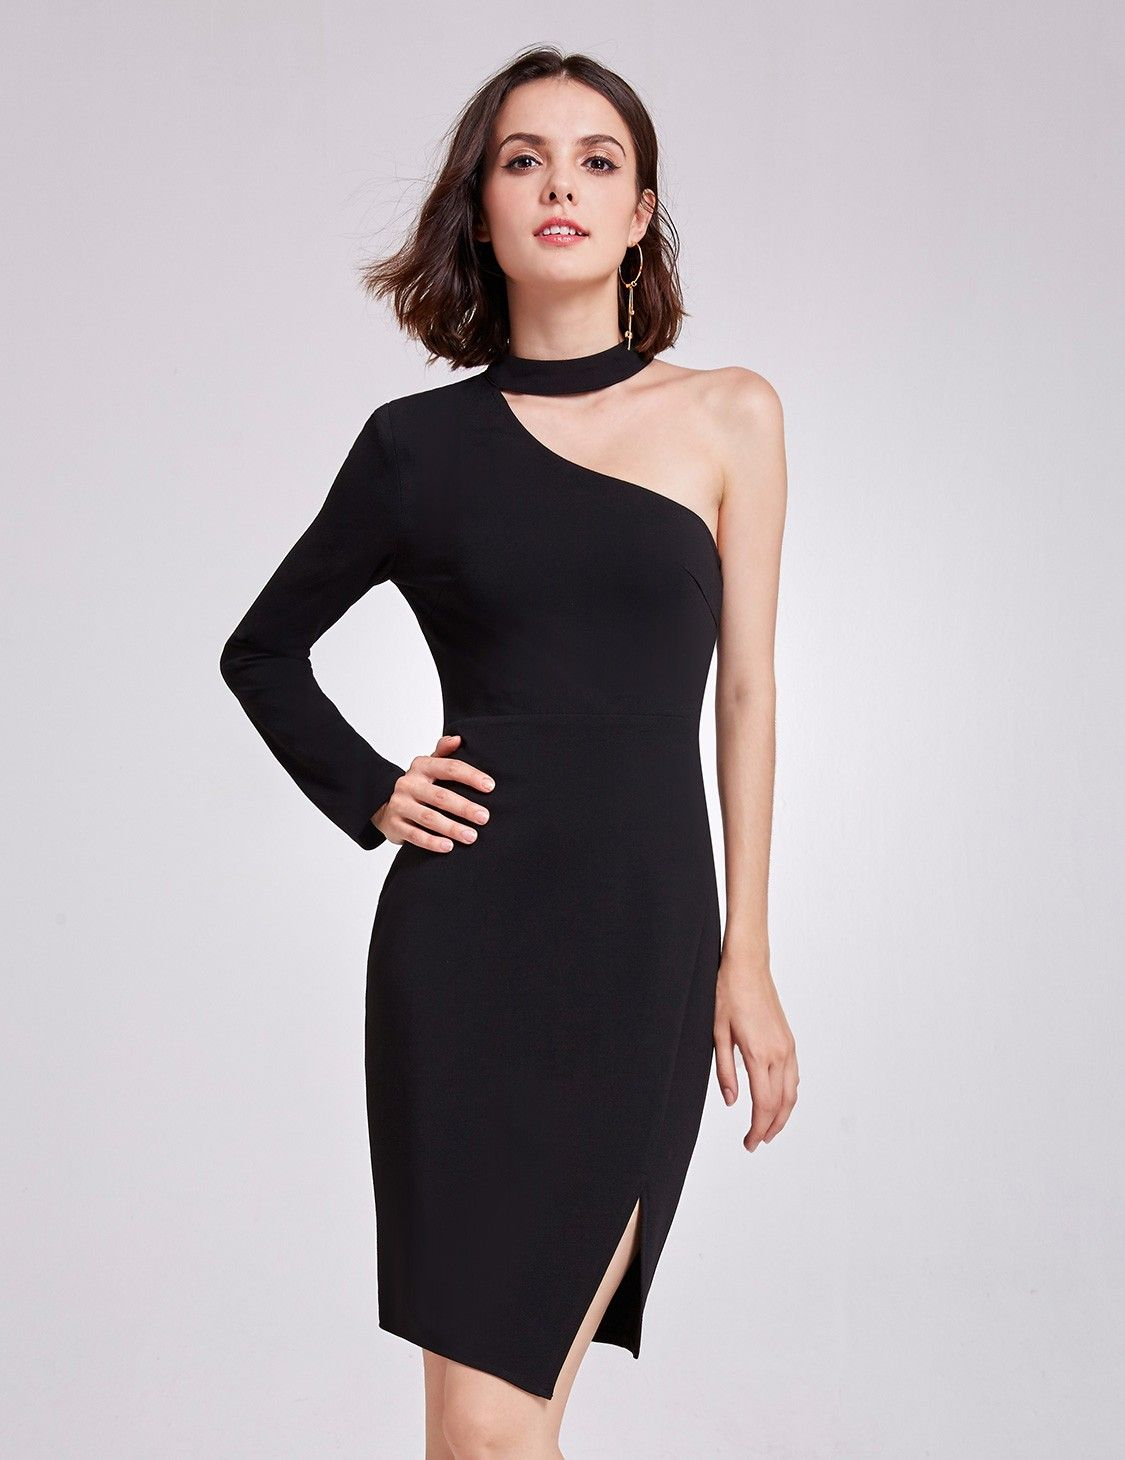 50ac0cc49af7 Alisa Pan One Shoulder Short LBD | Ever-Pretty #partydress #partydresses  #EverPretty #oneshoulderdress #blackdress